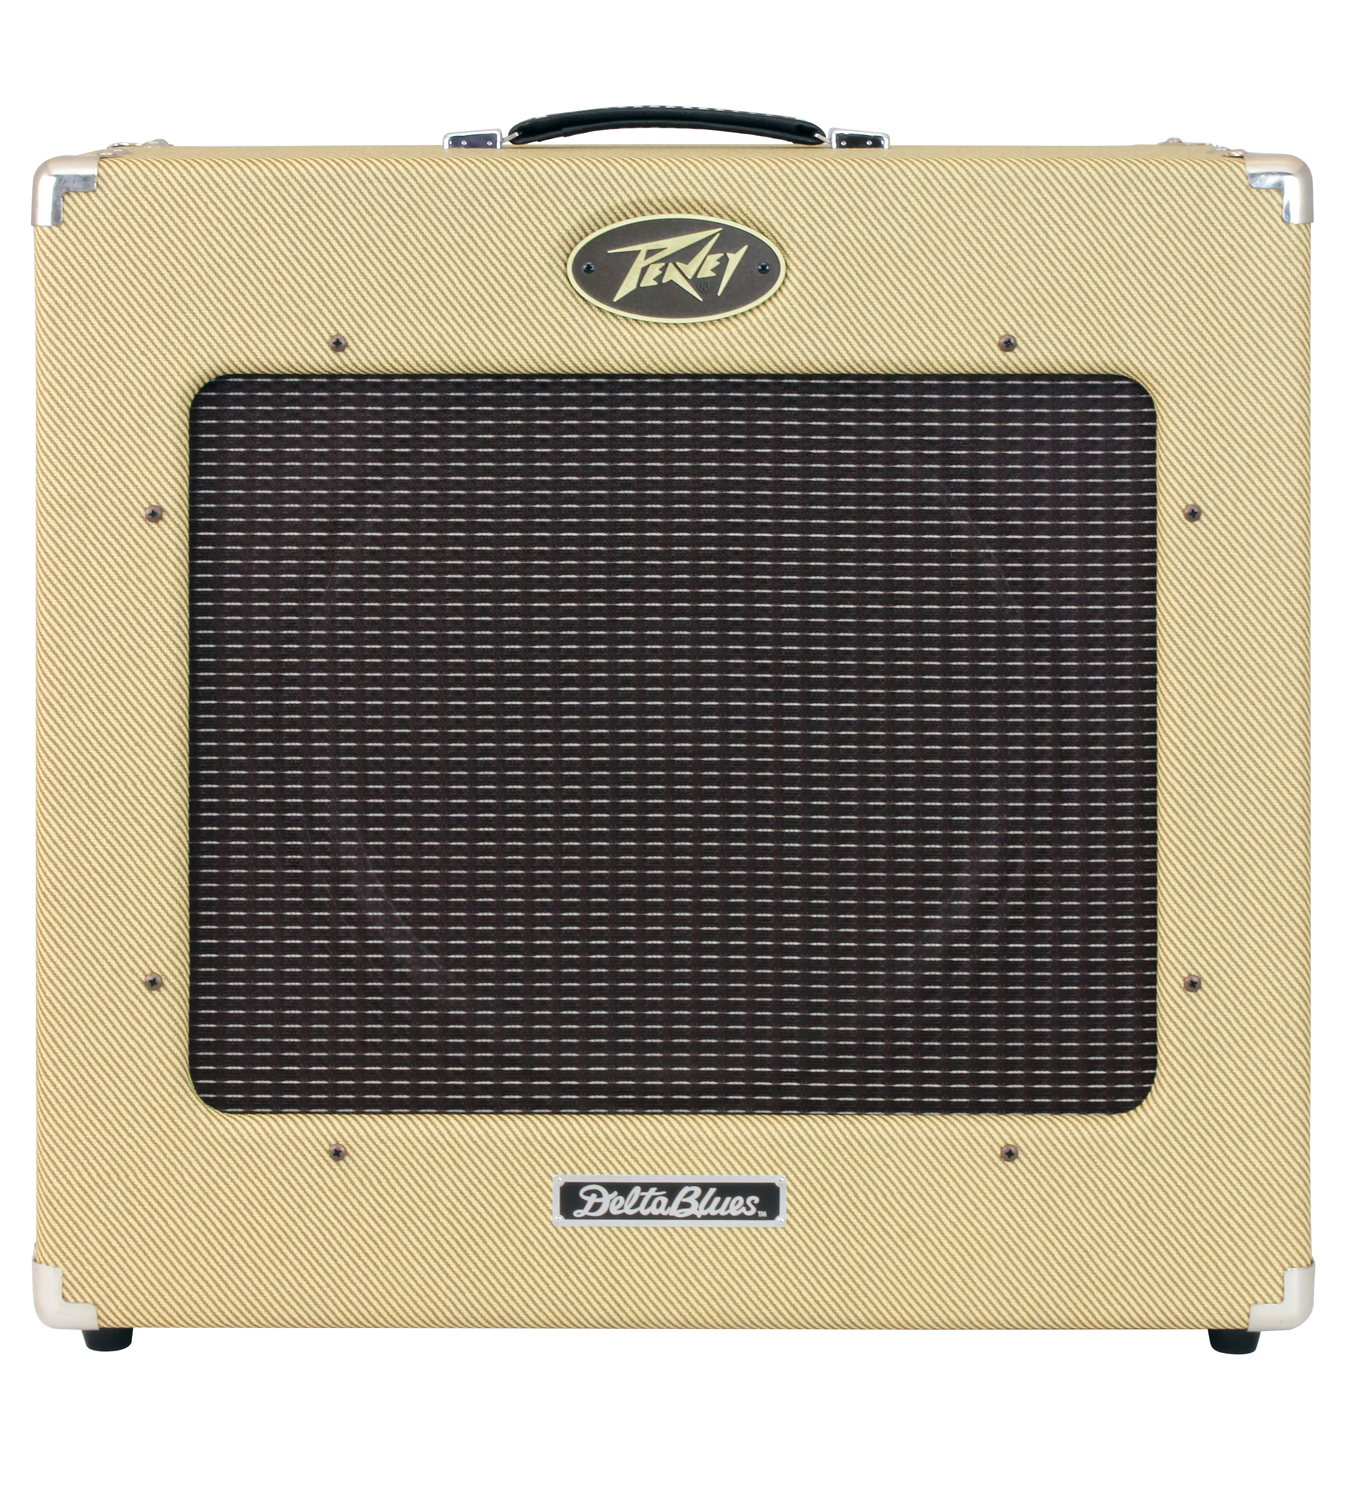 118118_35272 delta blues™ 115 tweed peavey com  at creativeand.co